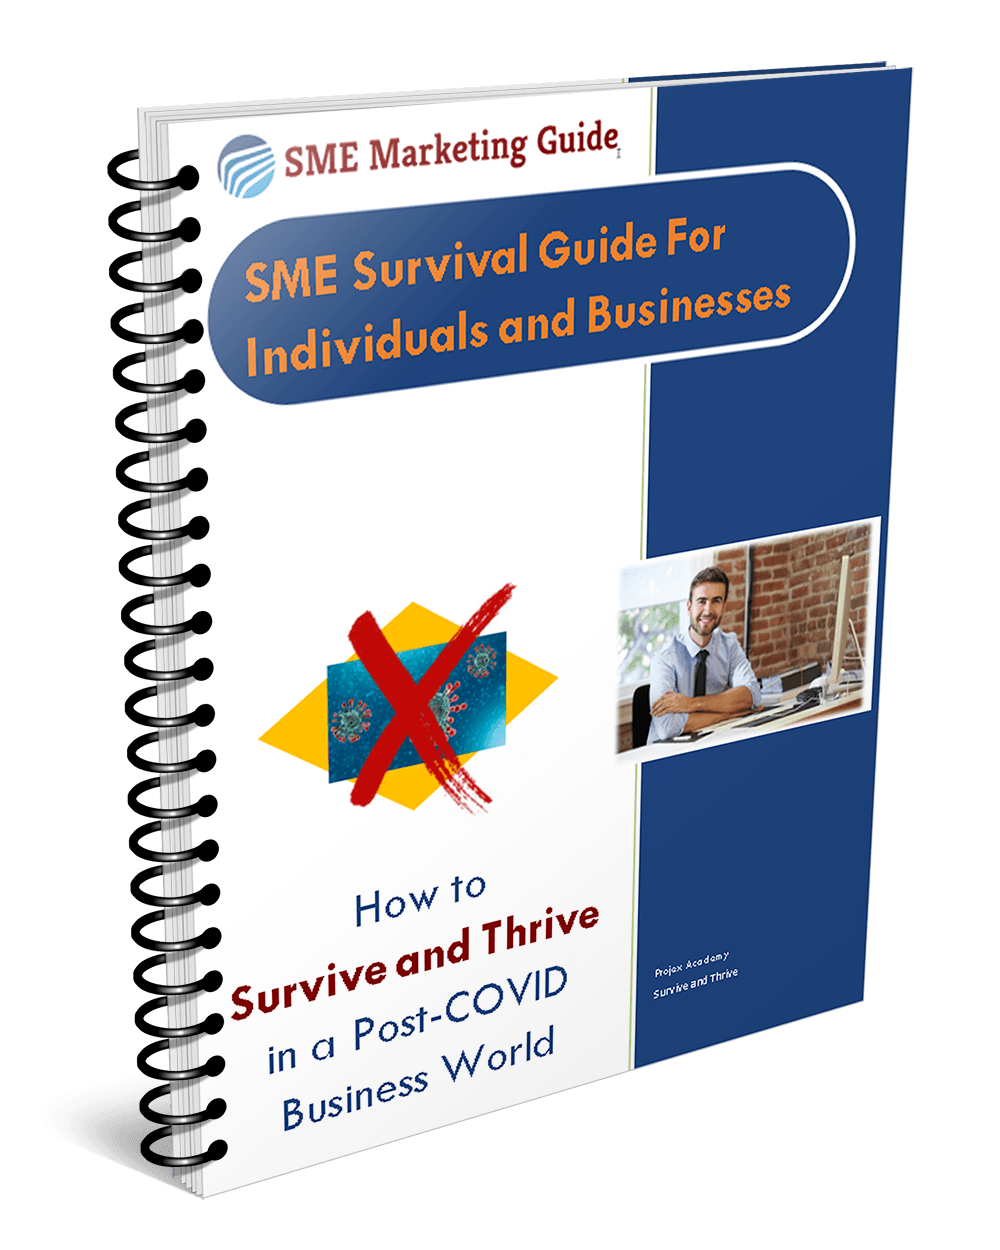 SME Survival Guide for Individuals and Businesses